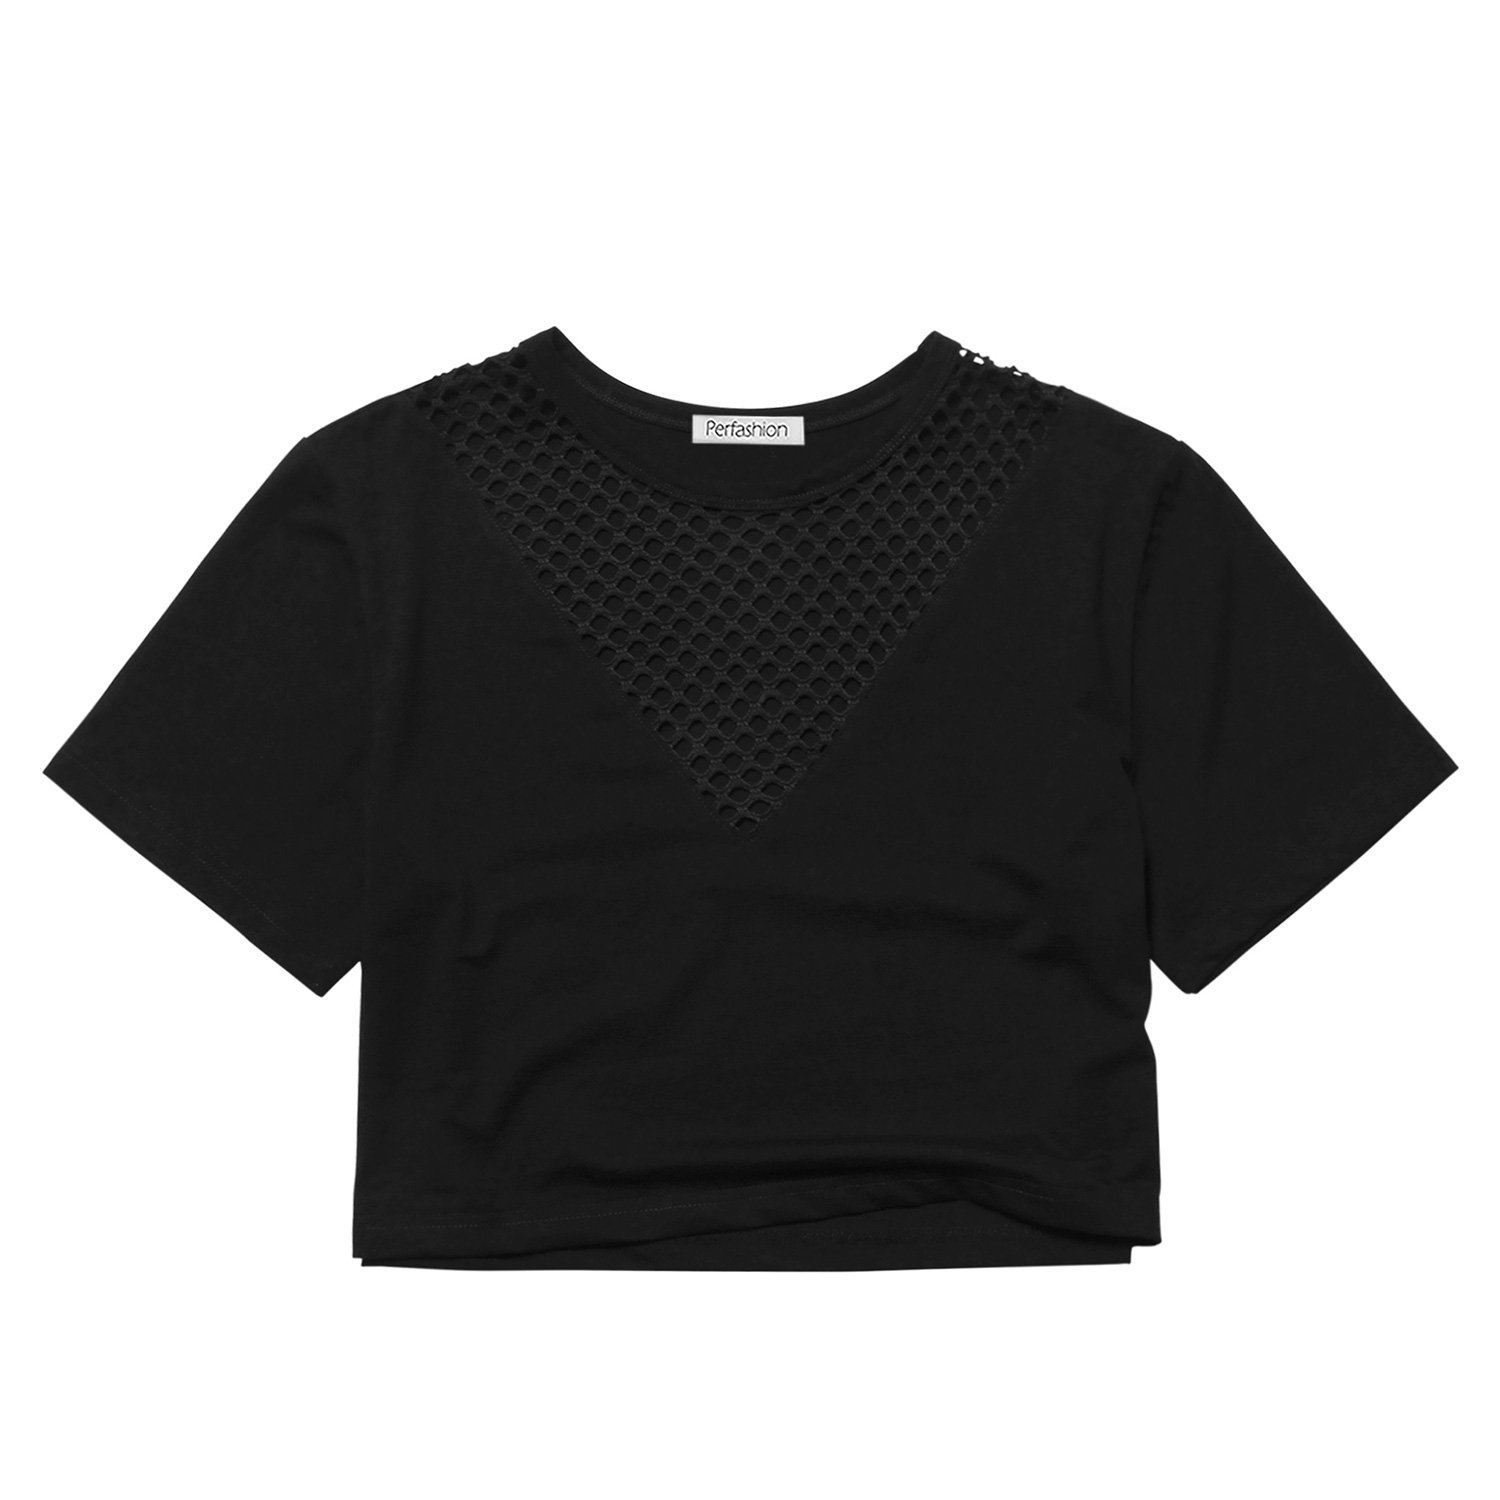 short sleeve crop tops for women Black Large by Perfashion (Image #5)